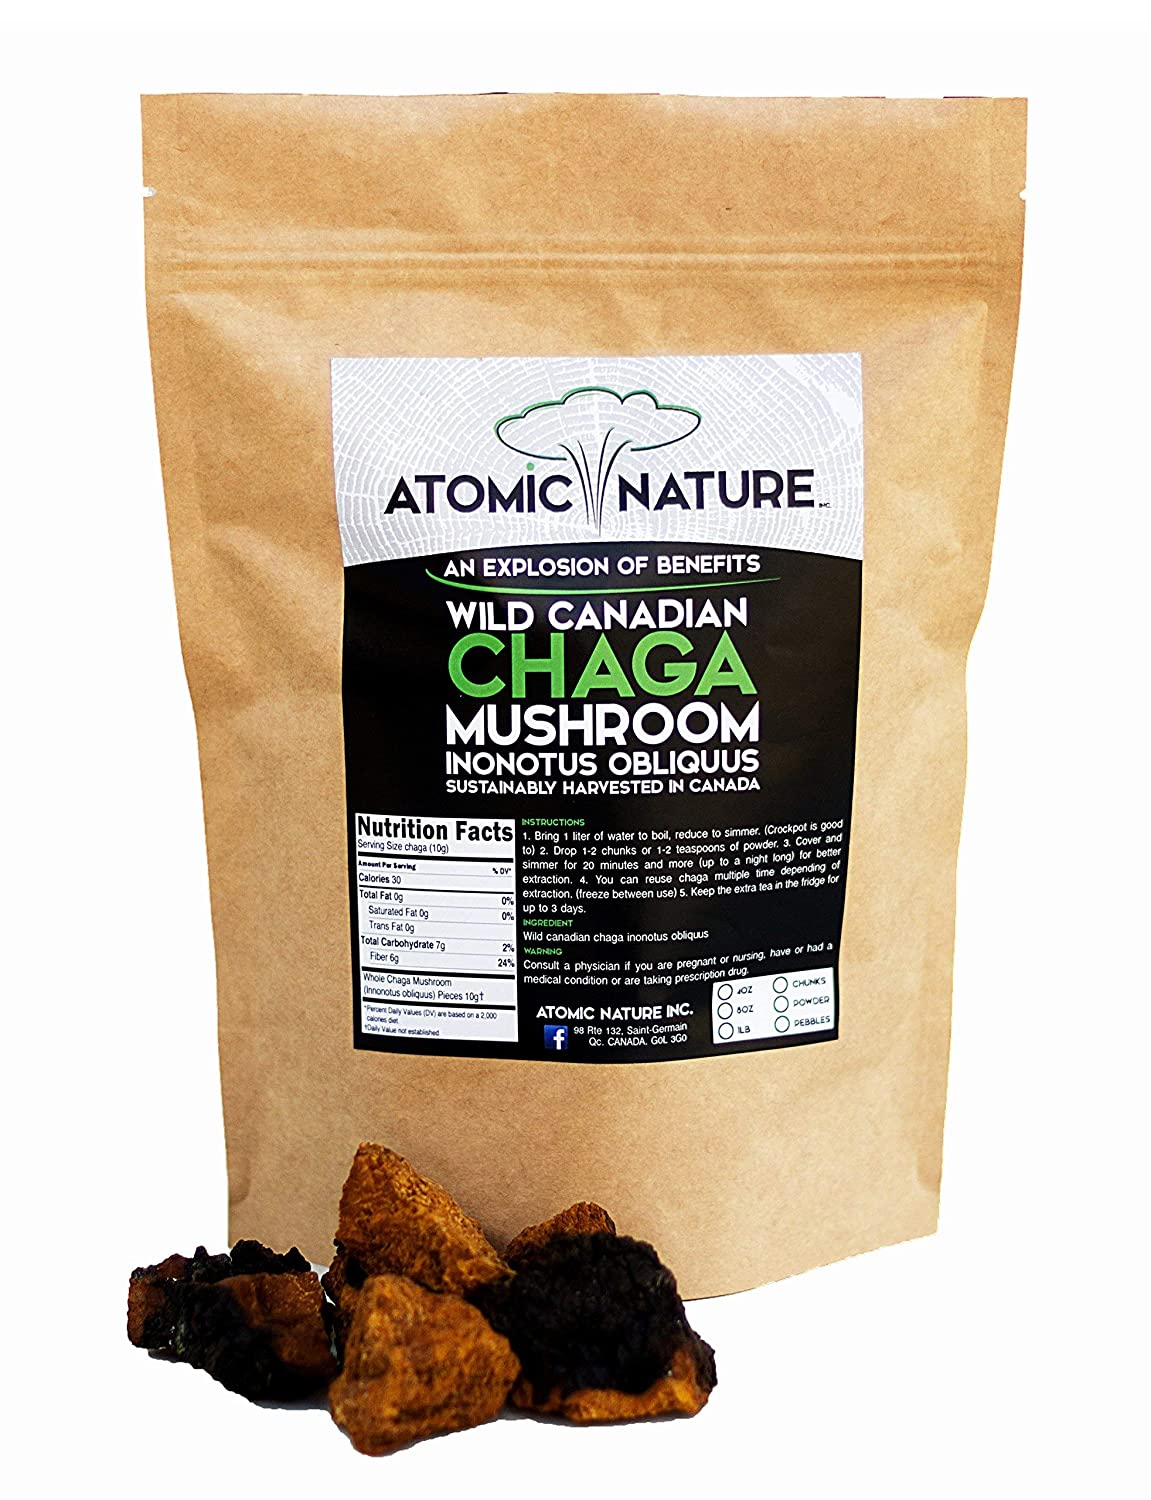 8oz Raw Organic Wild Chaga Mushroom Tea Chunks 100 Natural Hand-Harvested Canadian Forest Chaga Superfood, Healthy Immune System Booster Antioxidant